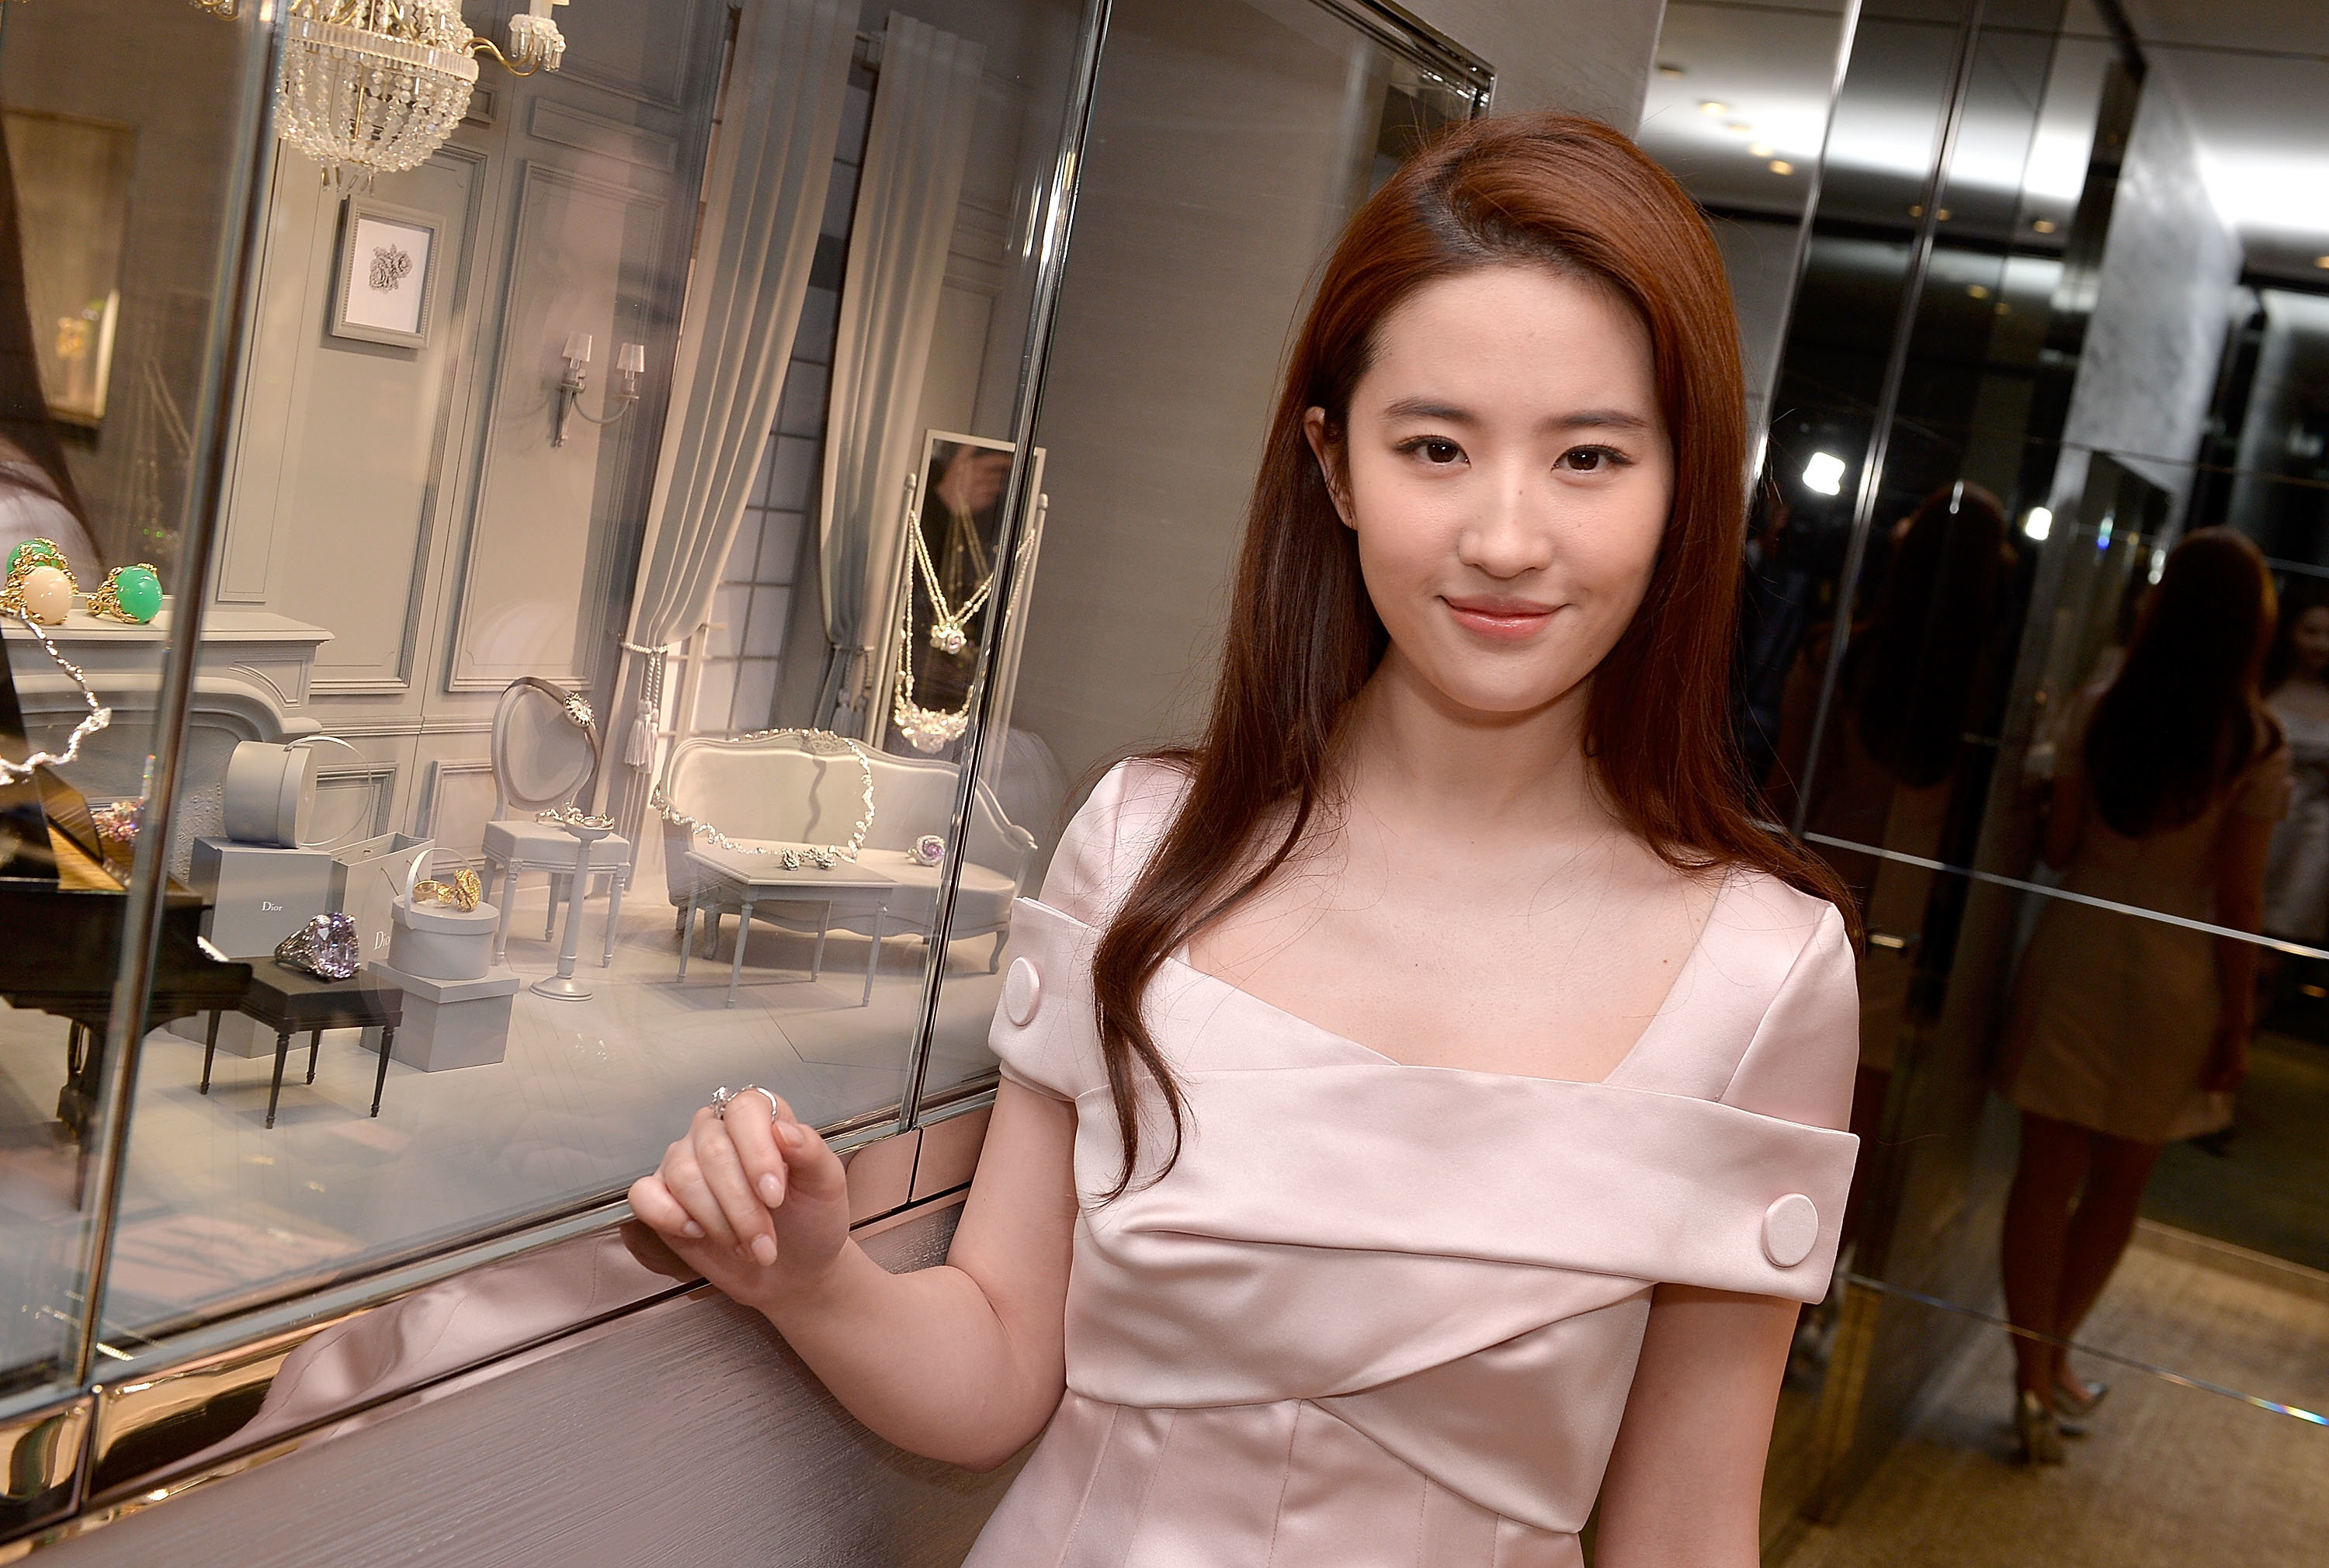 CANNES, FRANCE - MAY 11:  Actress Liu Yifei attends the Dior Boutique Opening during the 69th Annual Cannes Film Festival on May 11, 2016 in Cannes, France.  (Photo by Francois Durand/Getty Images for Dior)